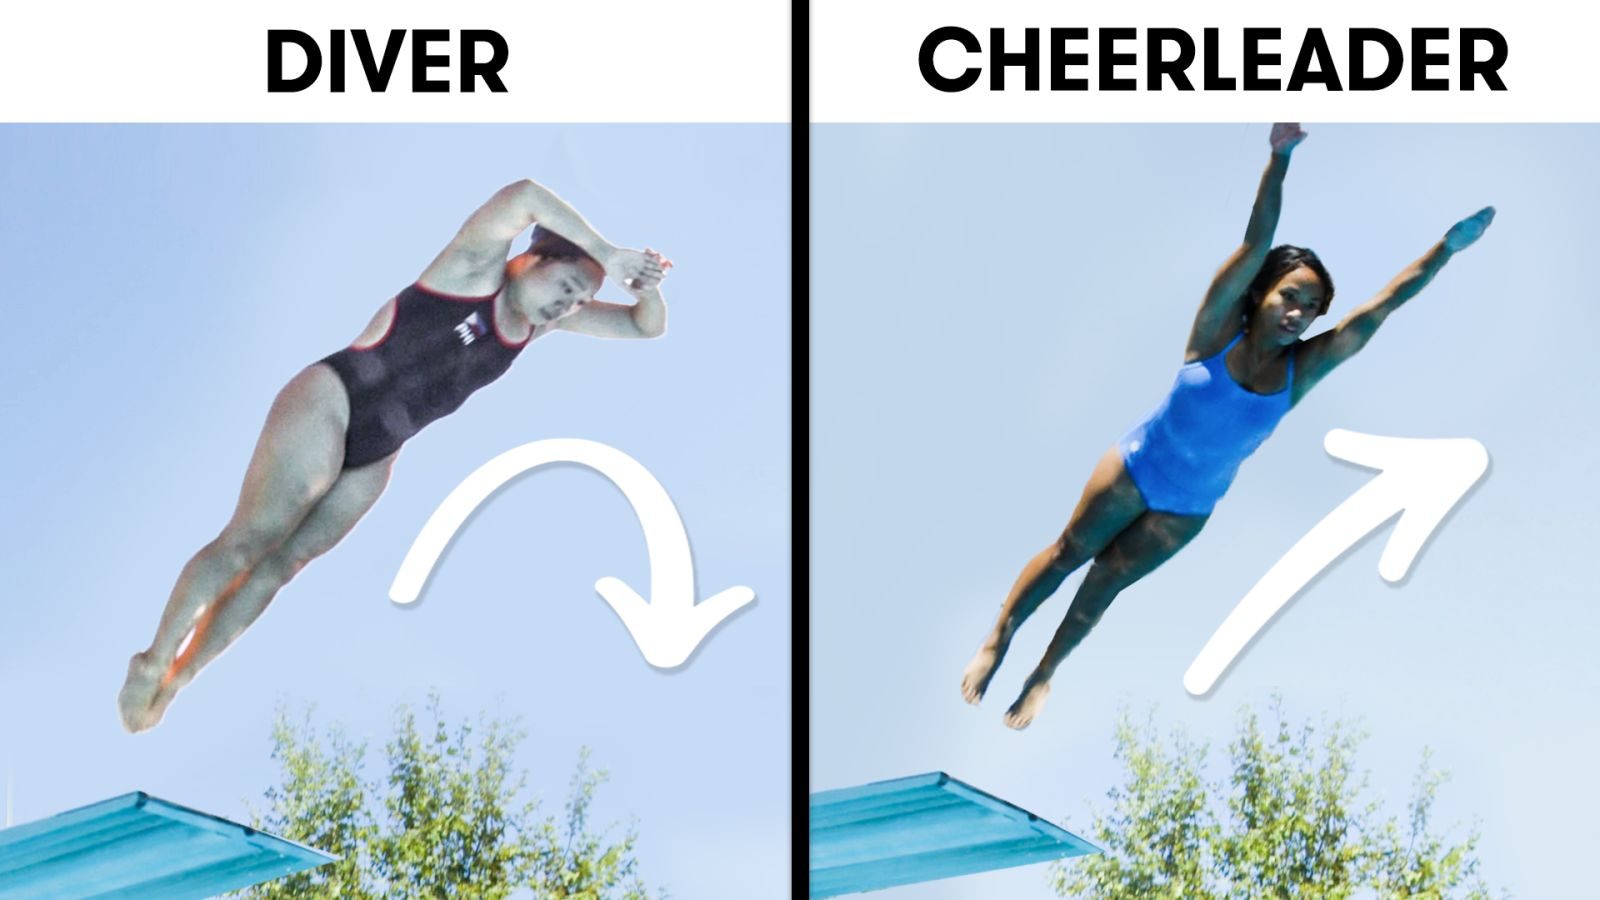 Cheerleaders Try To Keep Up With Synchronized Divers